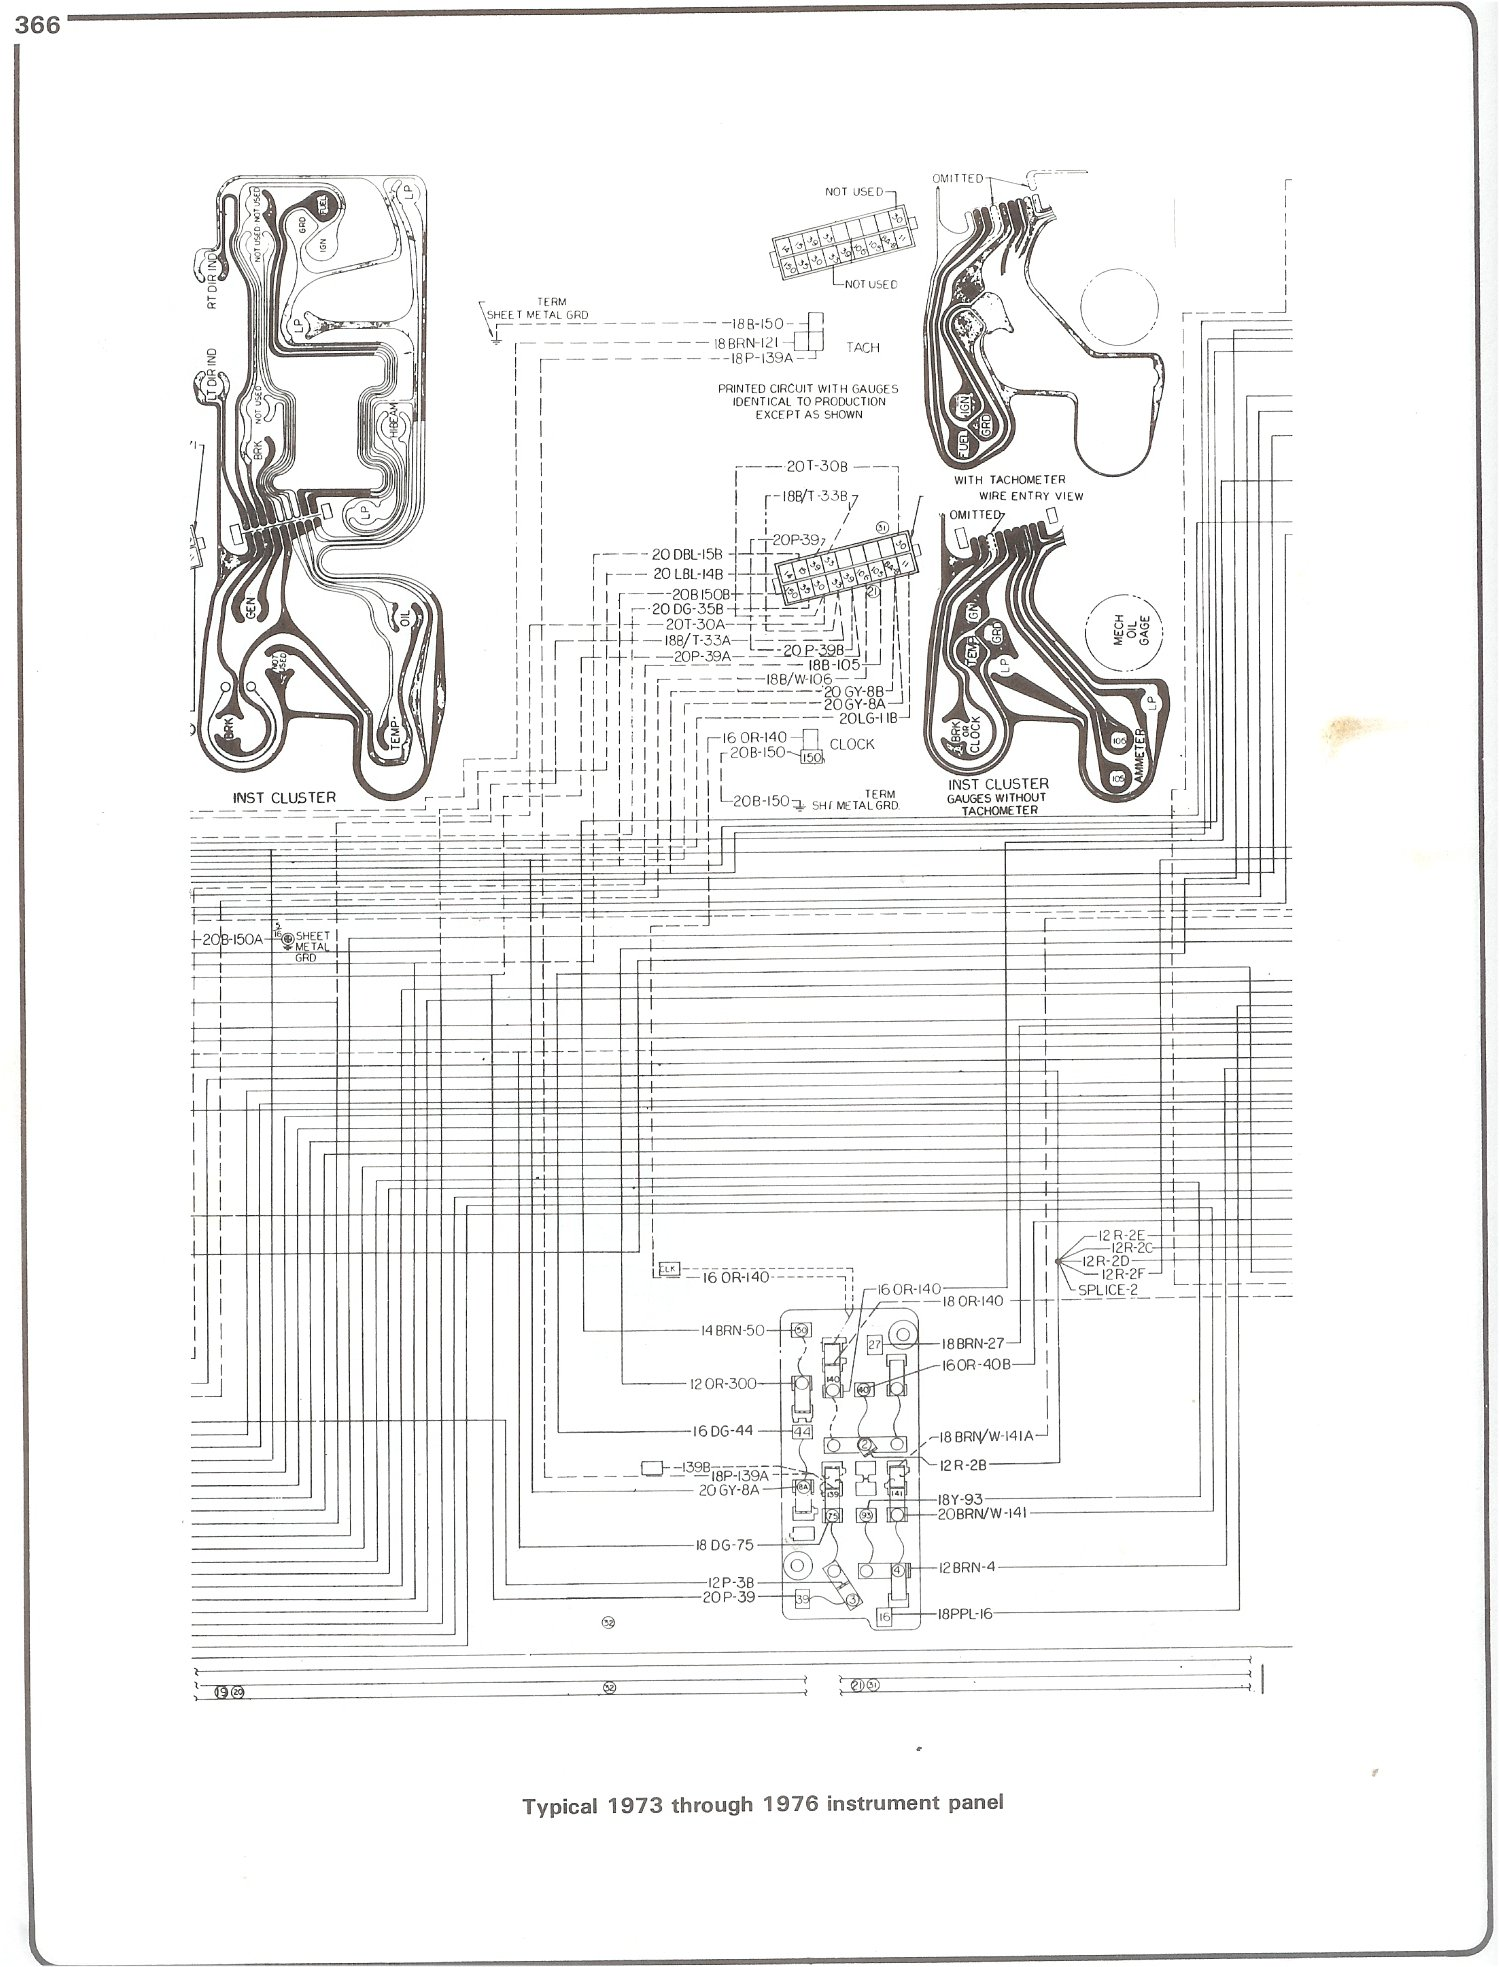 73 76_instrument complete 73 87 wiring diagrams 1986 chevy c10 wiring diagram at creativeand.co